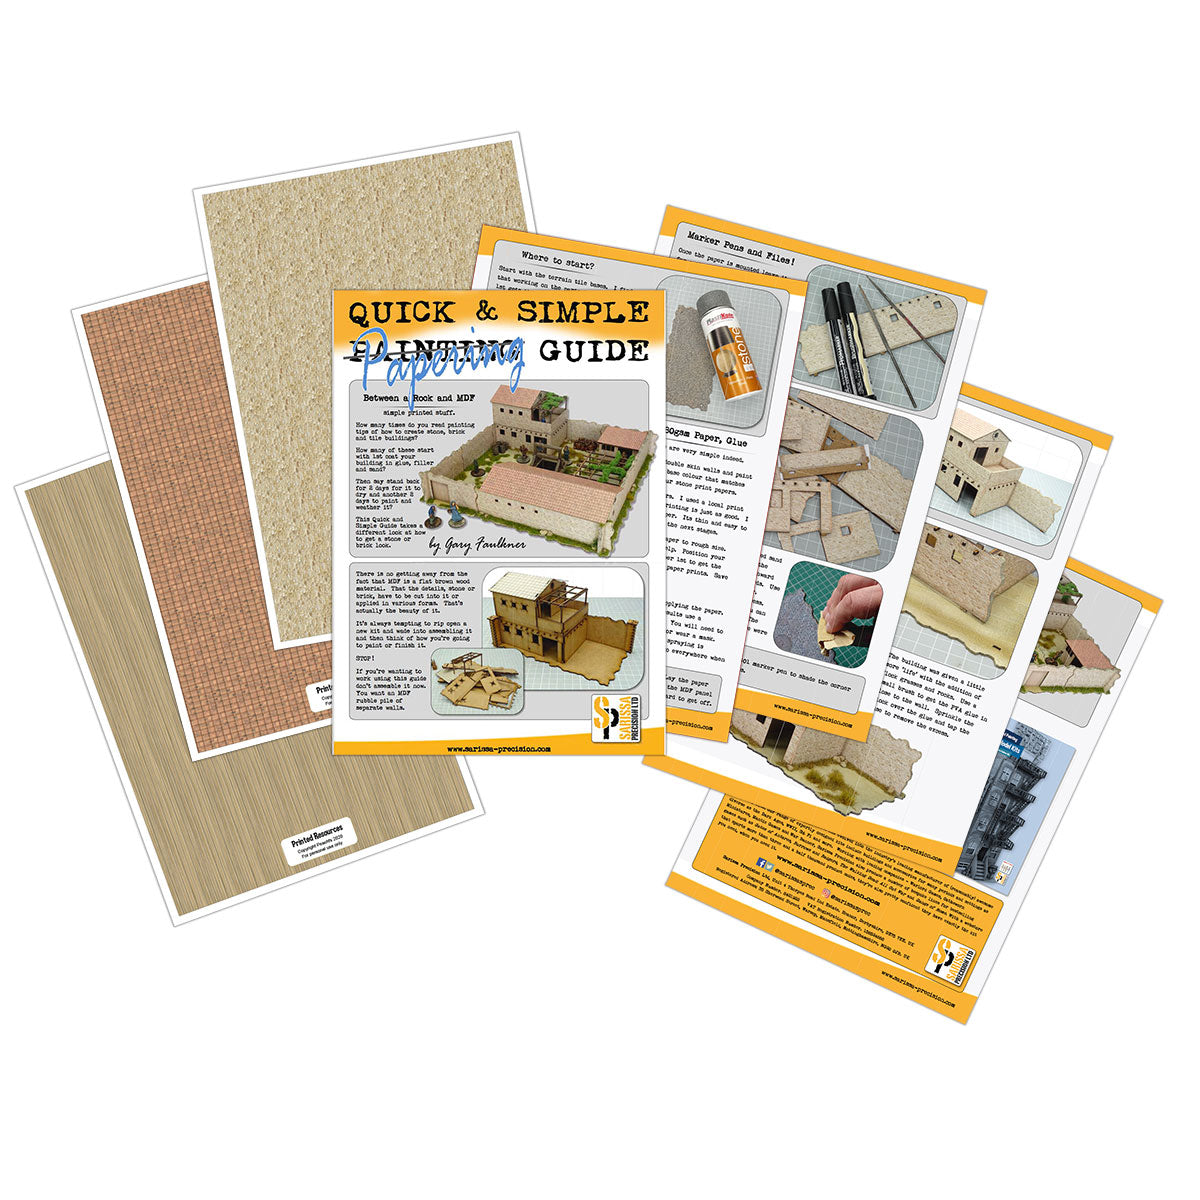 FREE: A Quick and Simple Papering Guide - Mediterranean Buildings